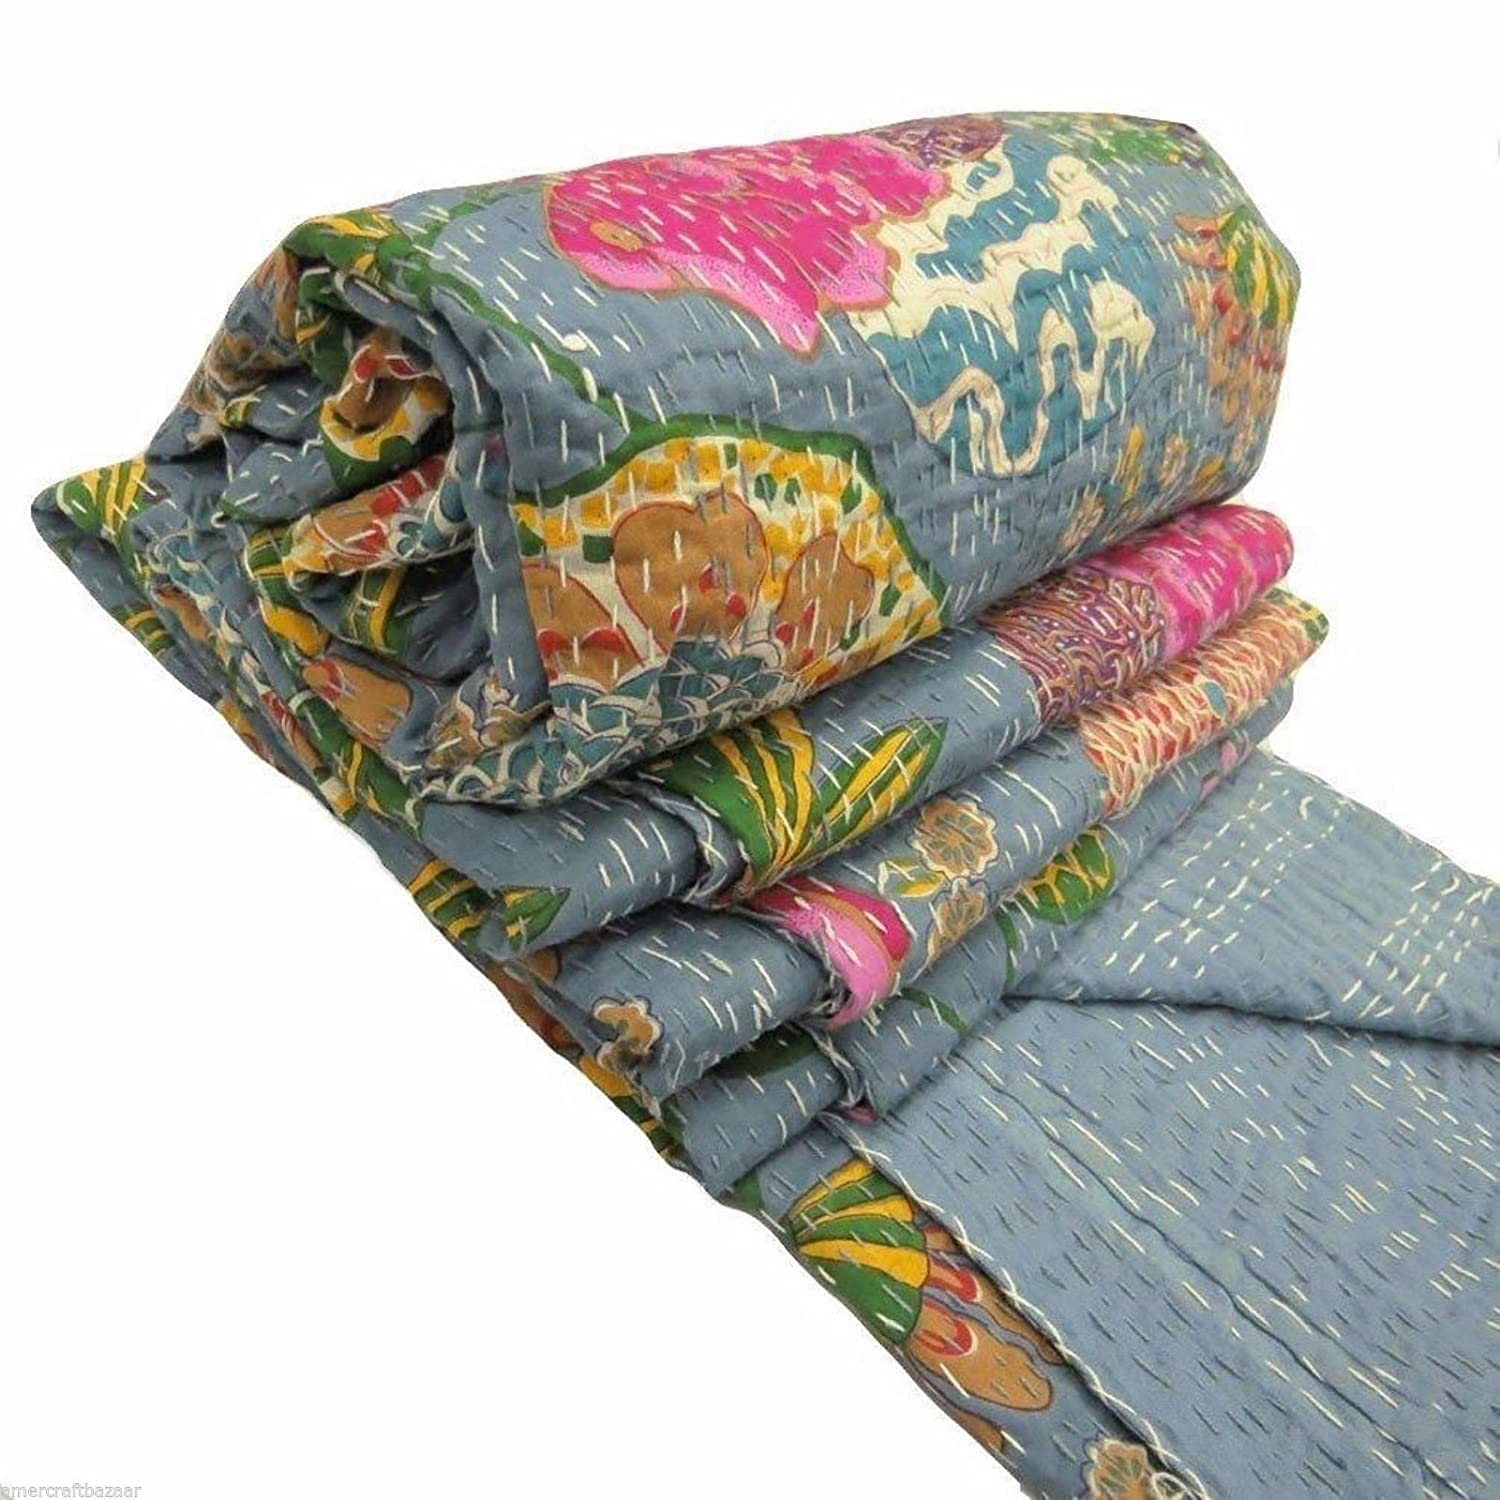 V Vedant Designs Indian Cotton Kantha Quilt Throw Blanket Bedspread Vintage Throw Gudari Cotton Handmade Kantha Quilt (Beige Fruit) GDRS0030